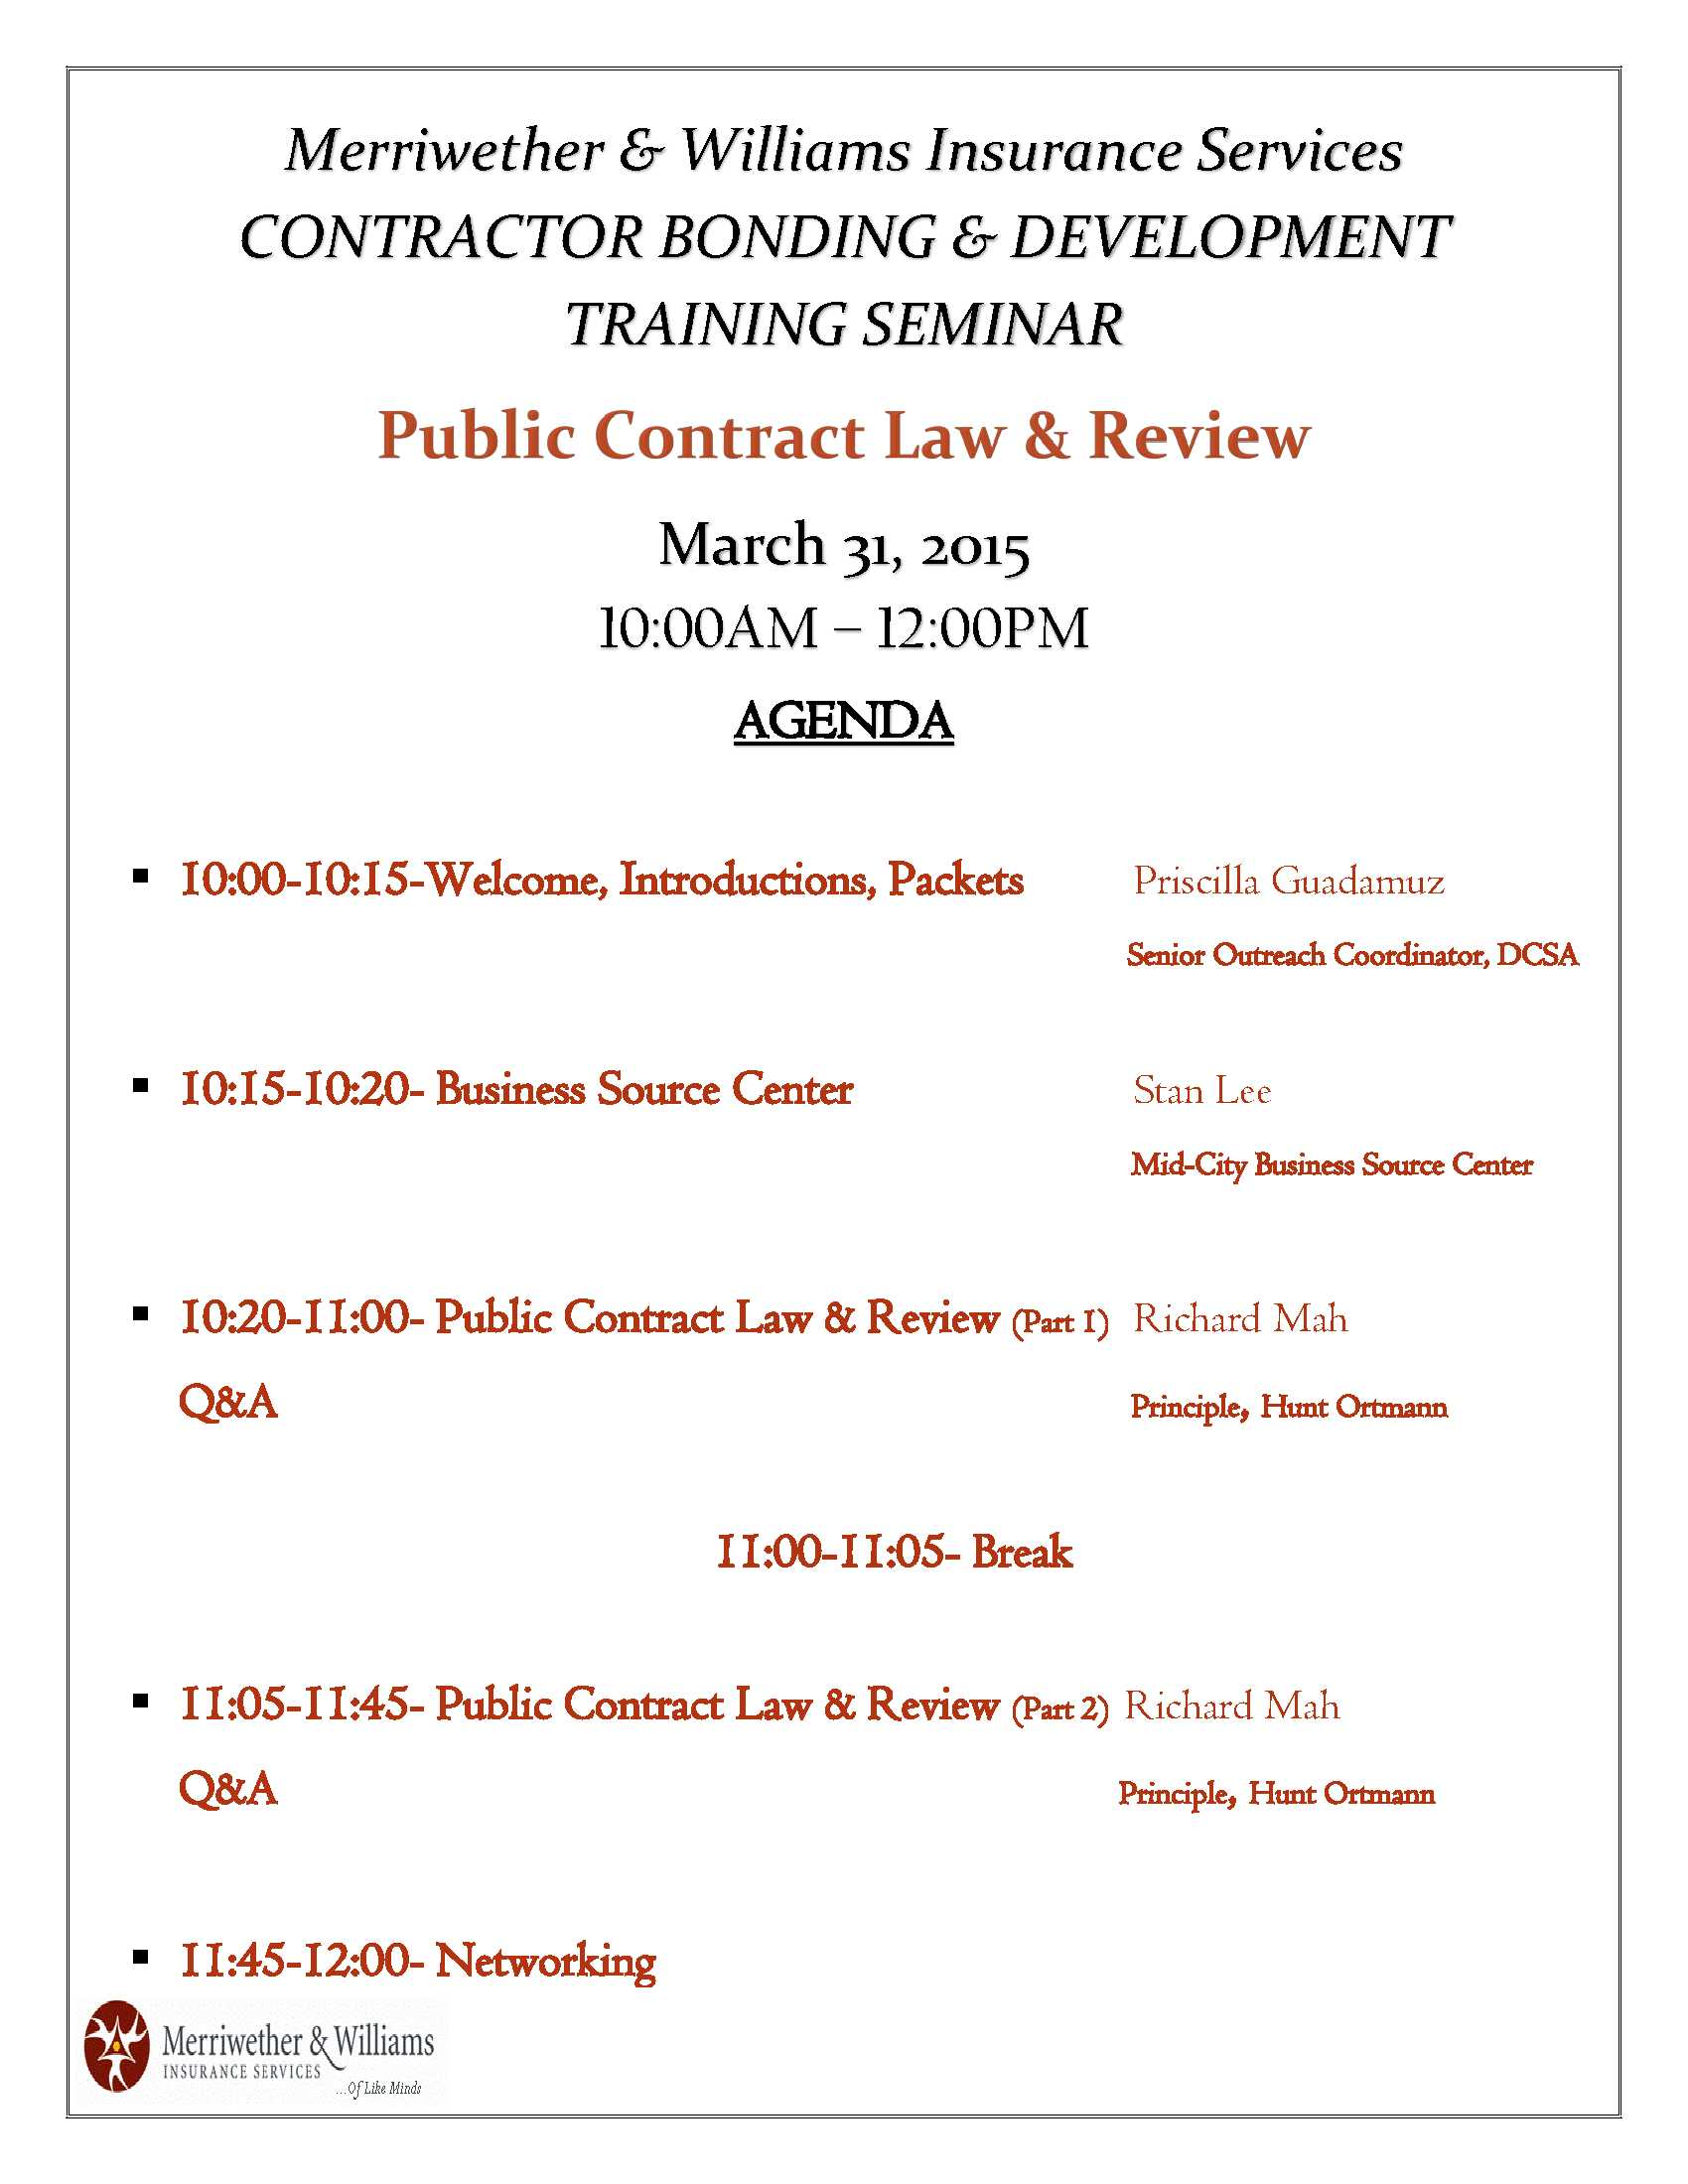 Public Contract Law Review Training Agenda